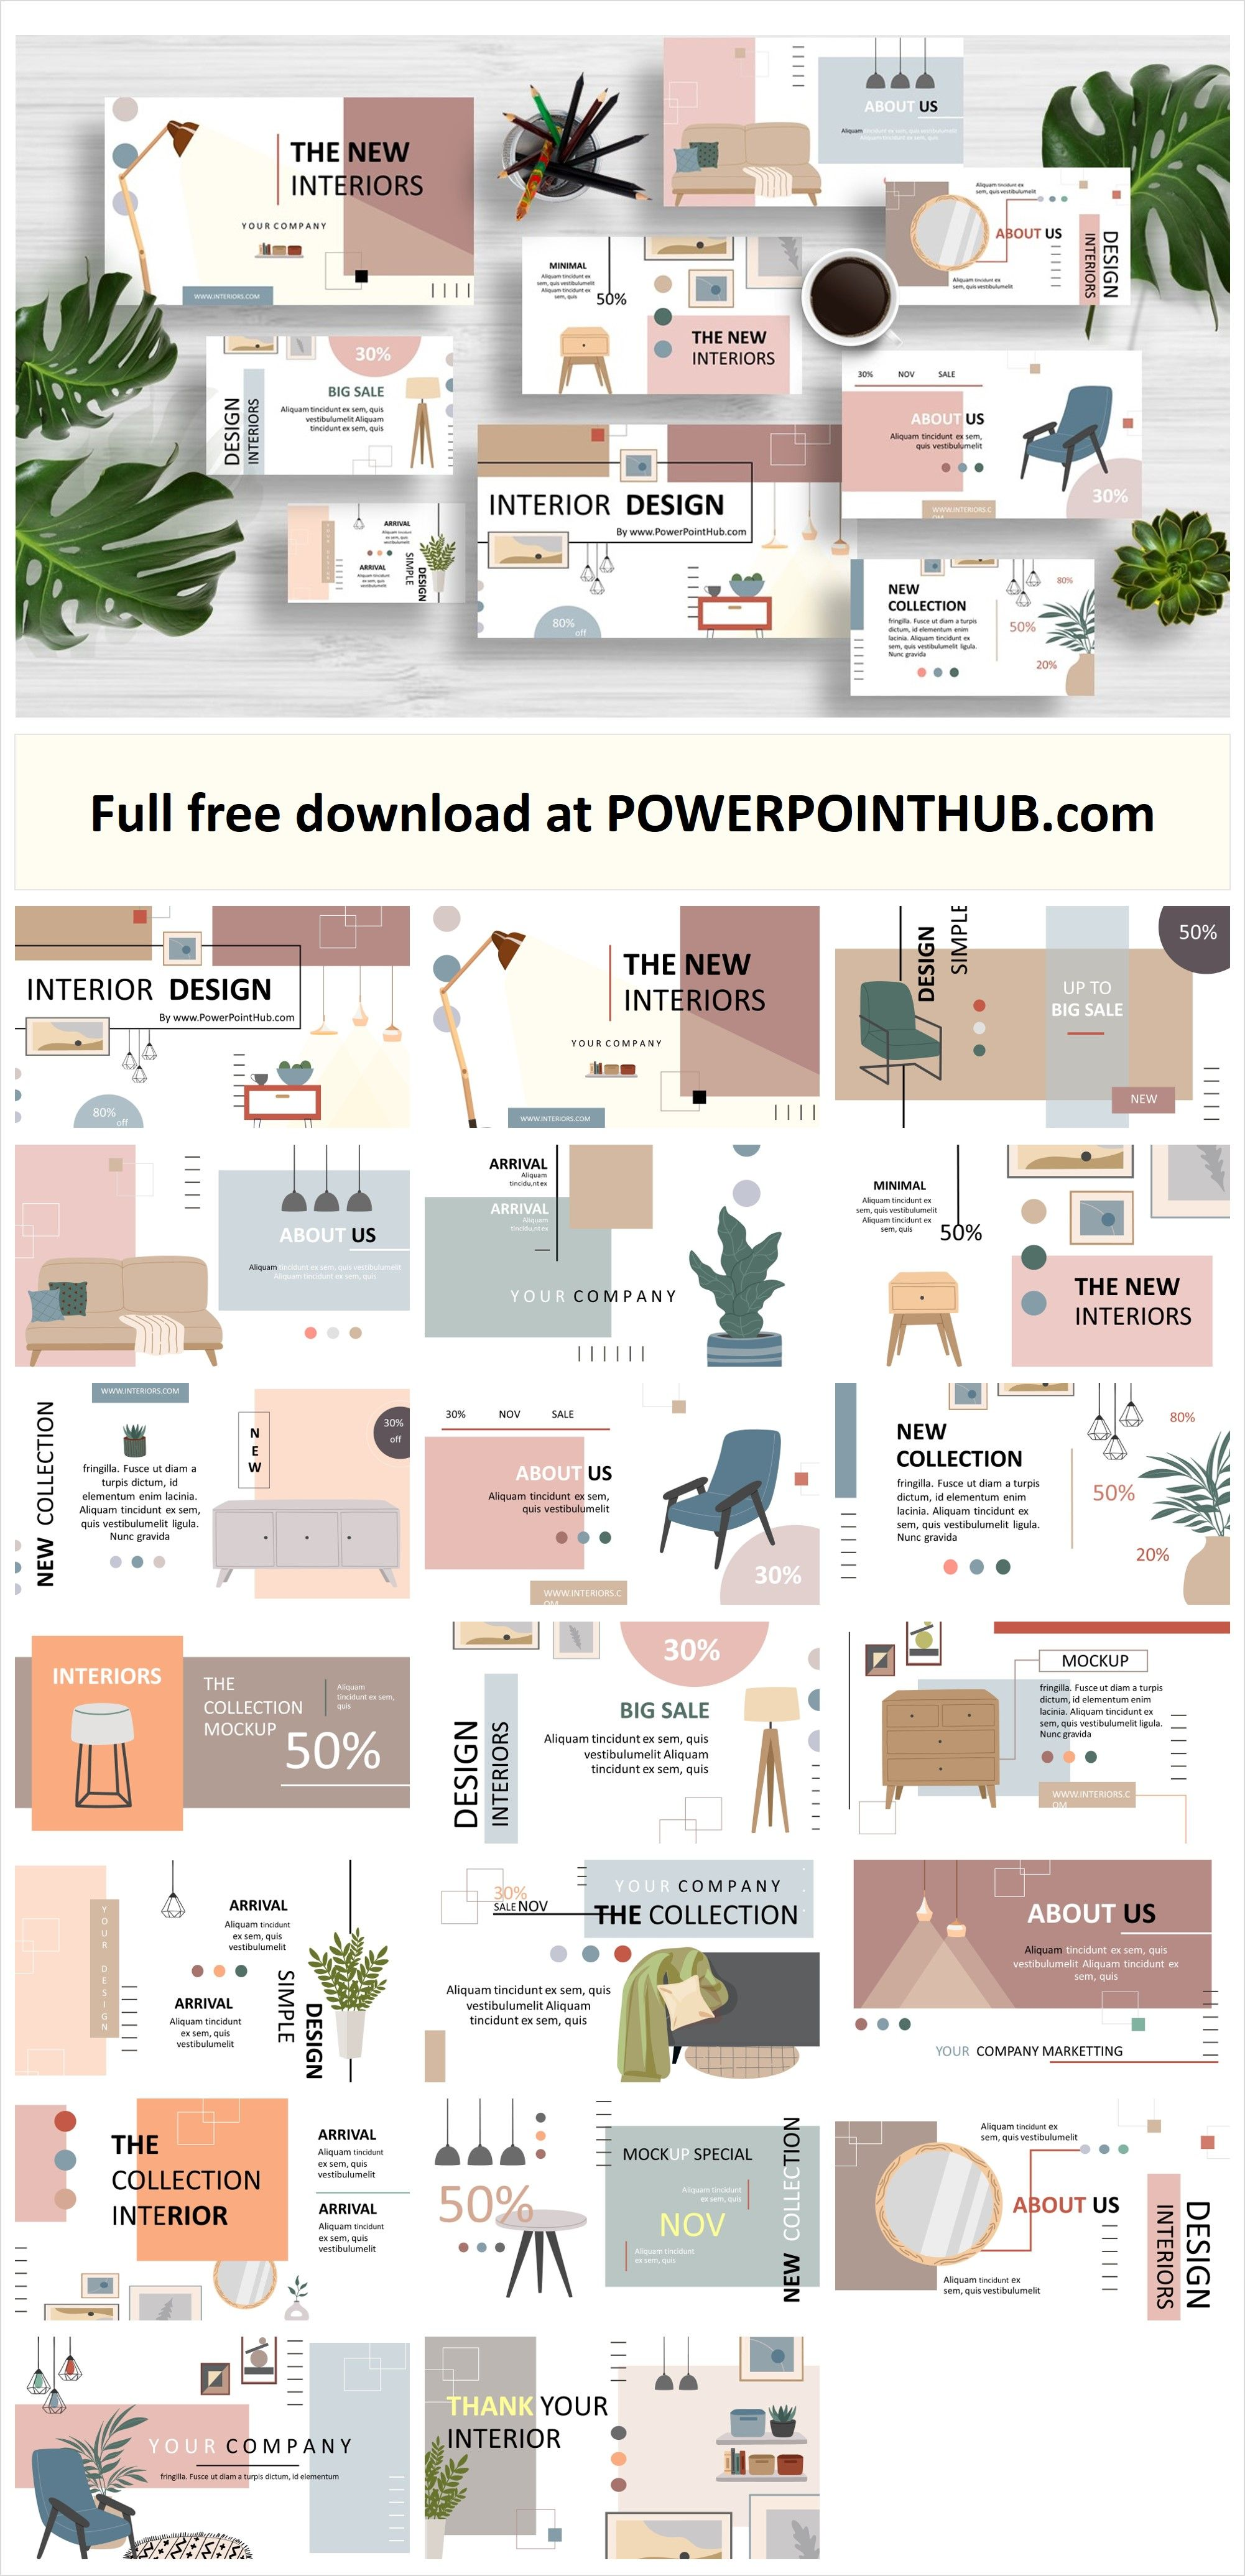 Free Download Interior Design Powerpoint Template Including Contemporary An In 2021 Powerpoint Design Templates Interior Design Template Powerpoint Presentation Design